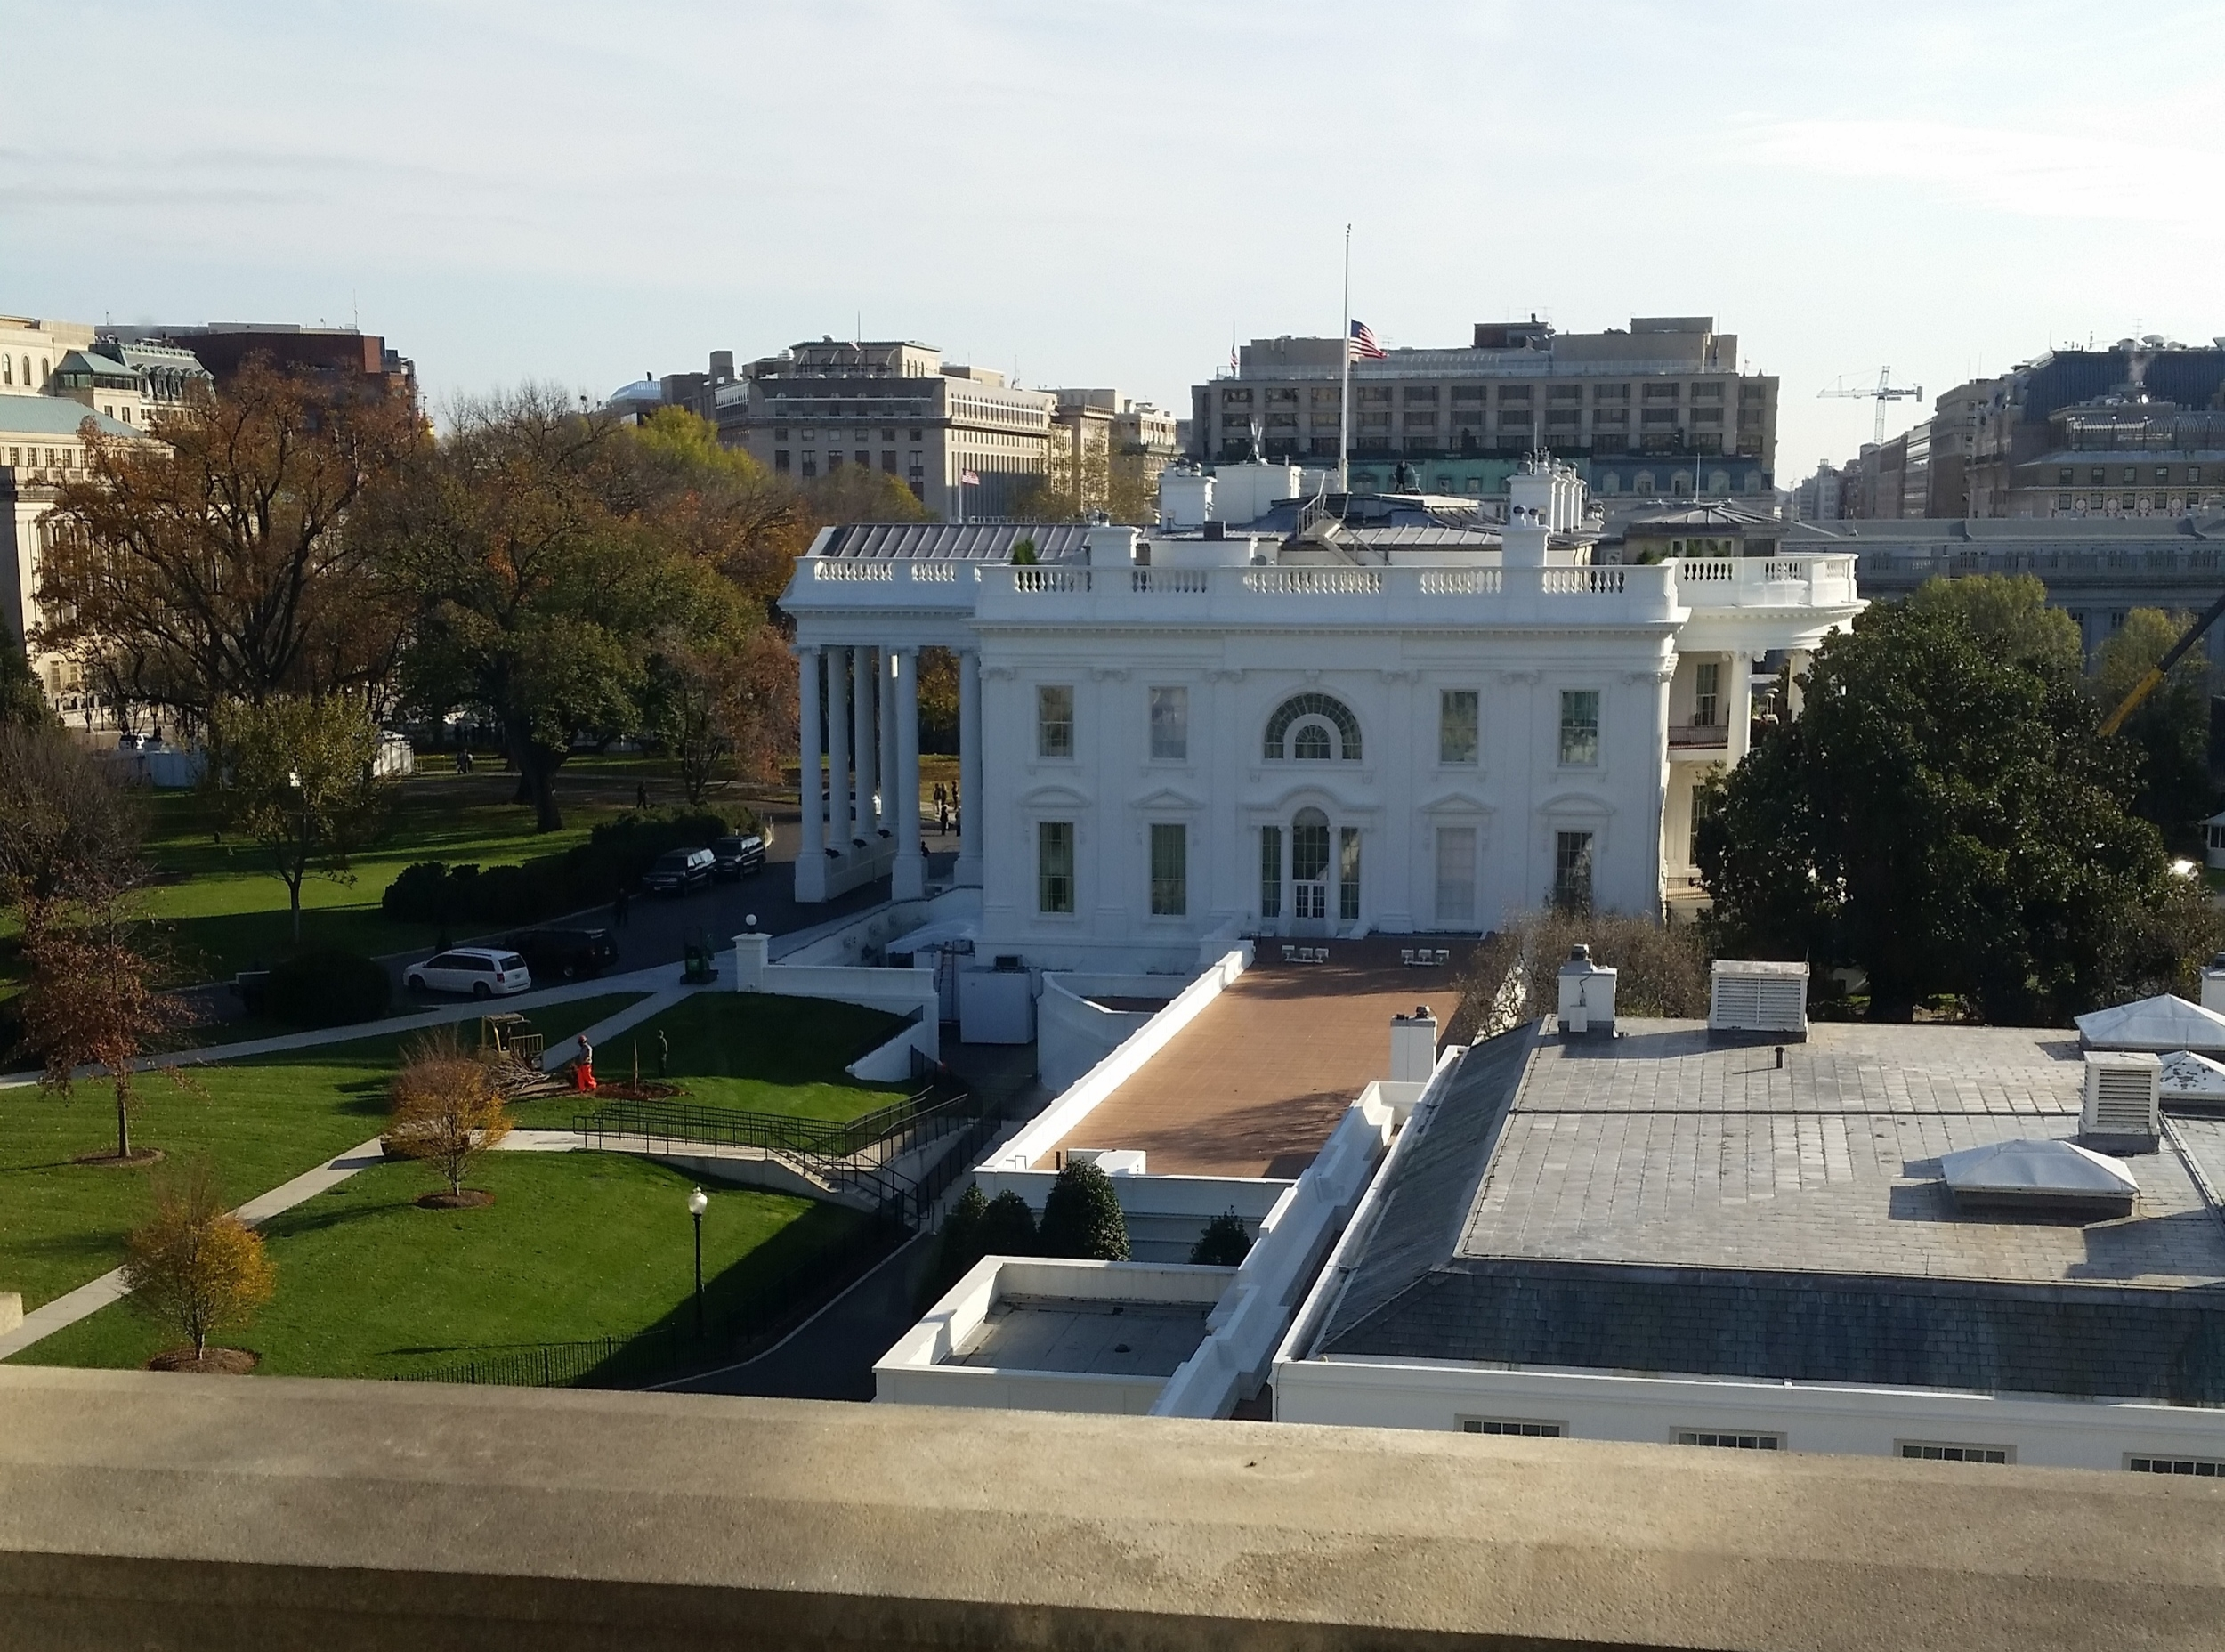 The view of the West Wing from our meeting room.